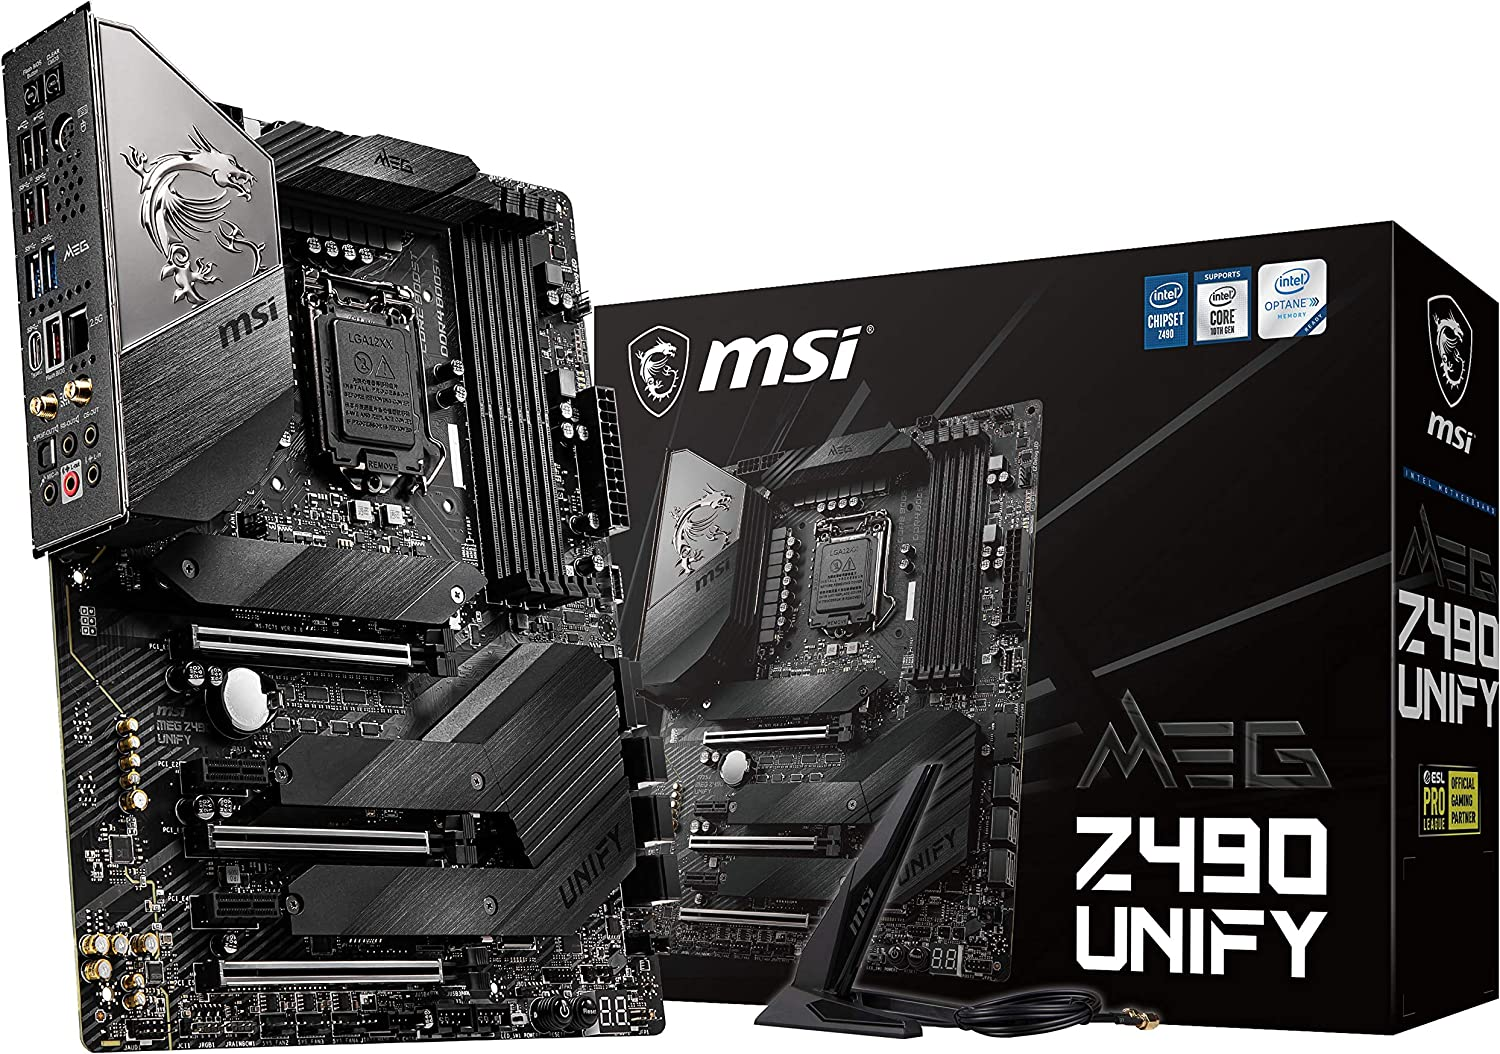 MSI MEG Z490 Unify ATX Gaming Motherboard Core Intel Gen Directly managed store Animer and price revision 10th